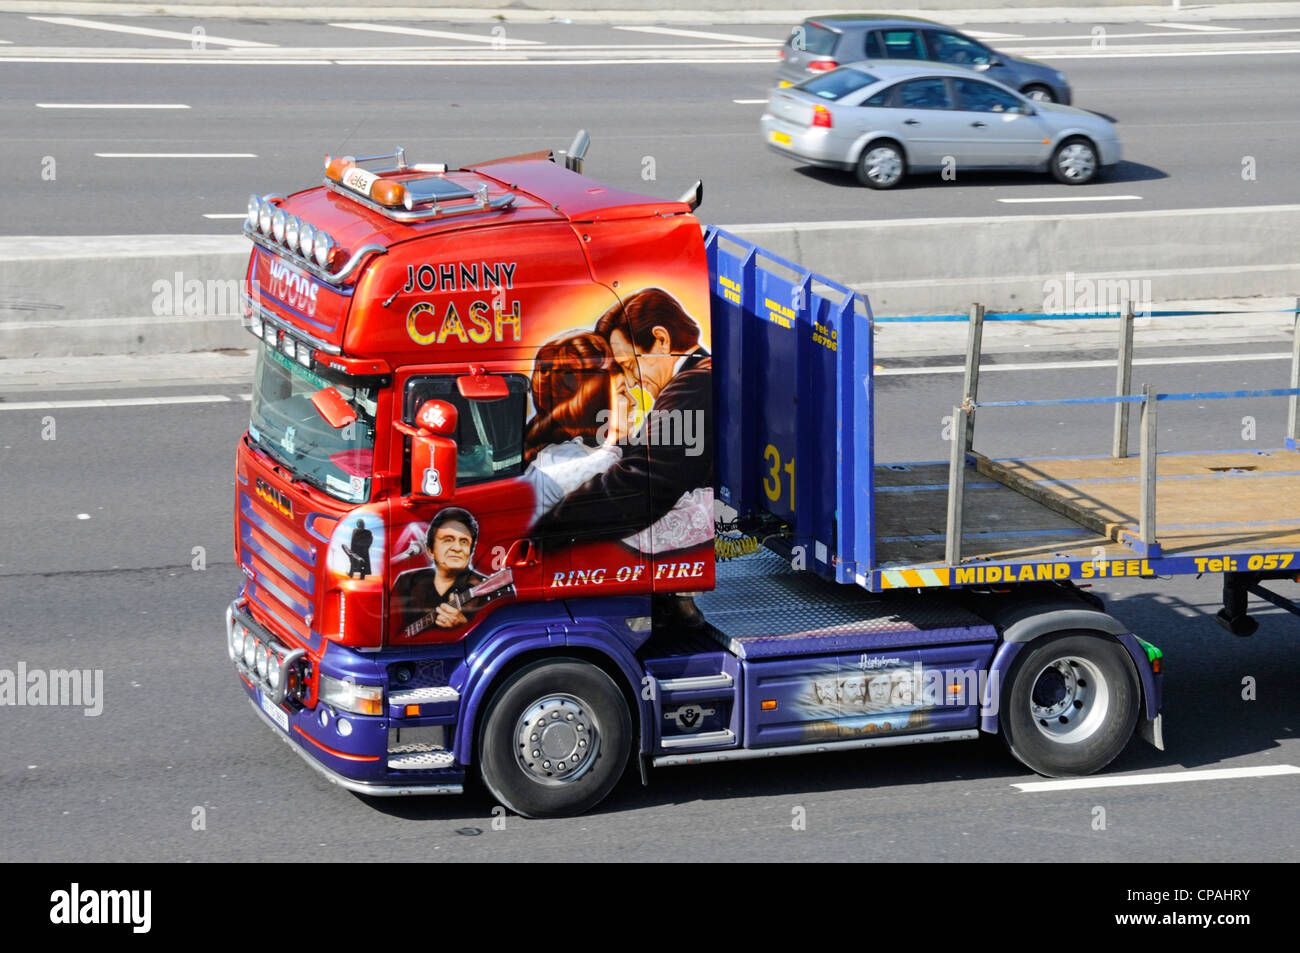 Scania truck cab with Johnny Cash graphics - Stock Image